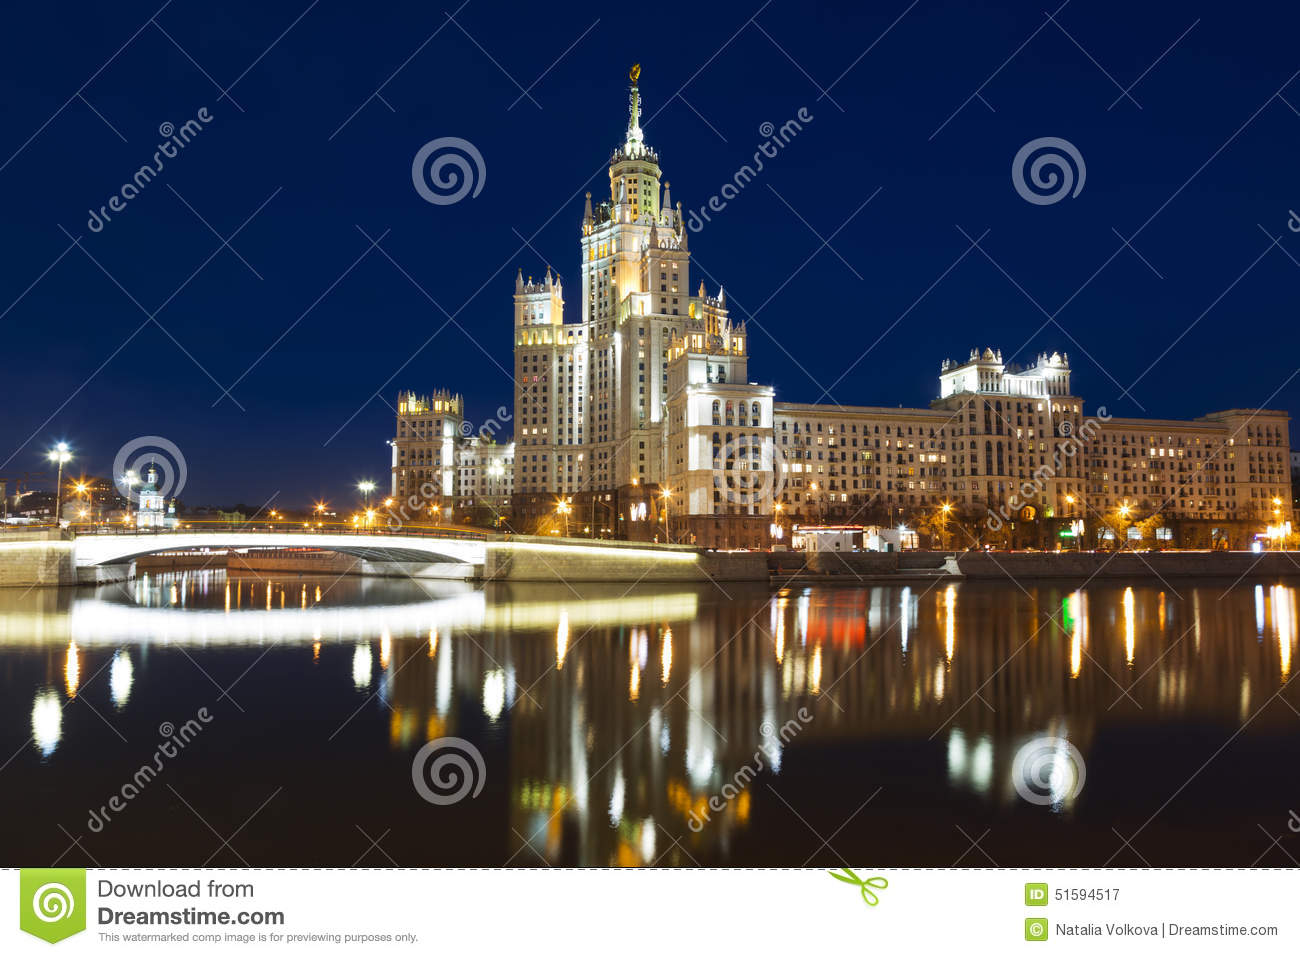 High-rise building on Kotelnicheskaya embankment in Moscow